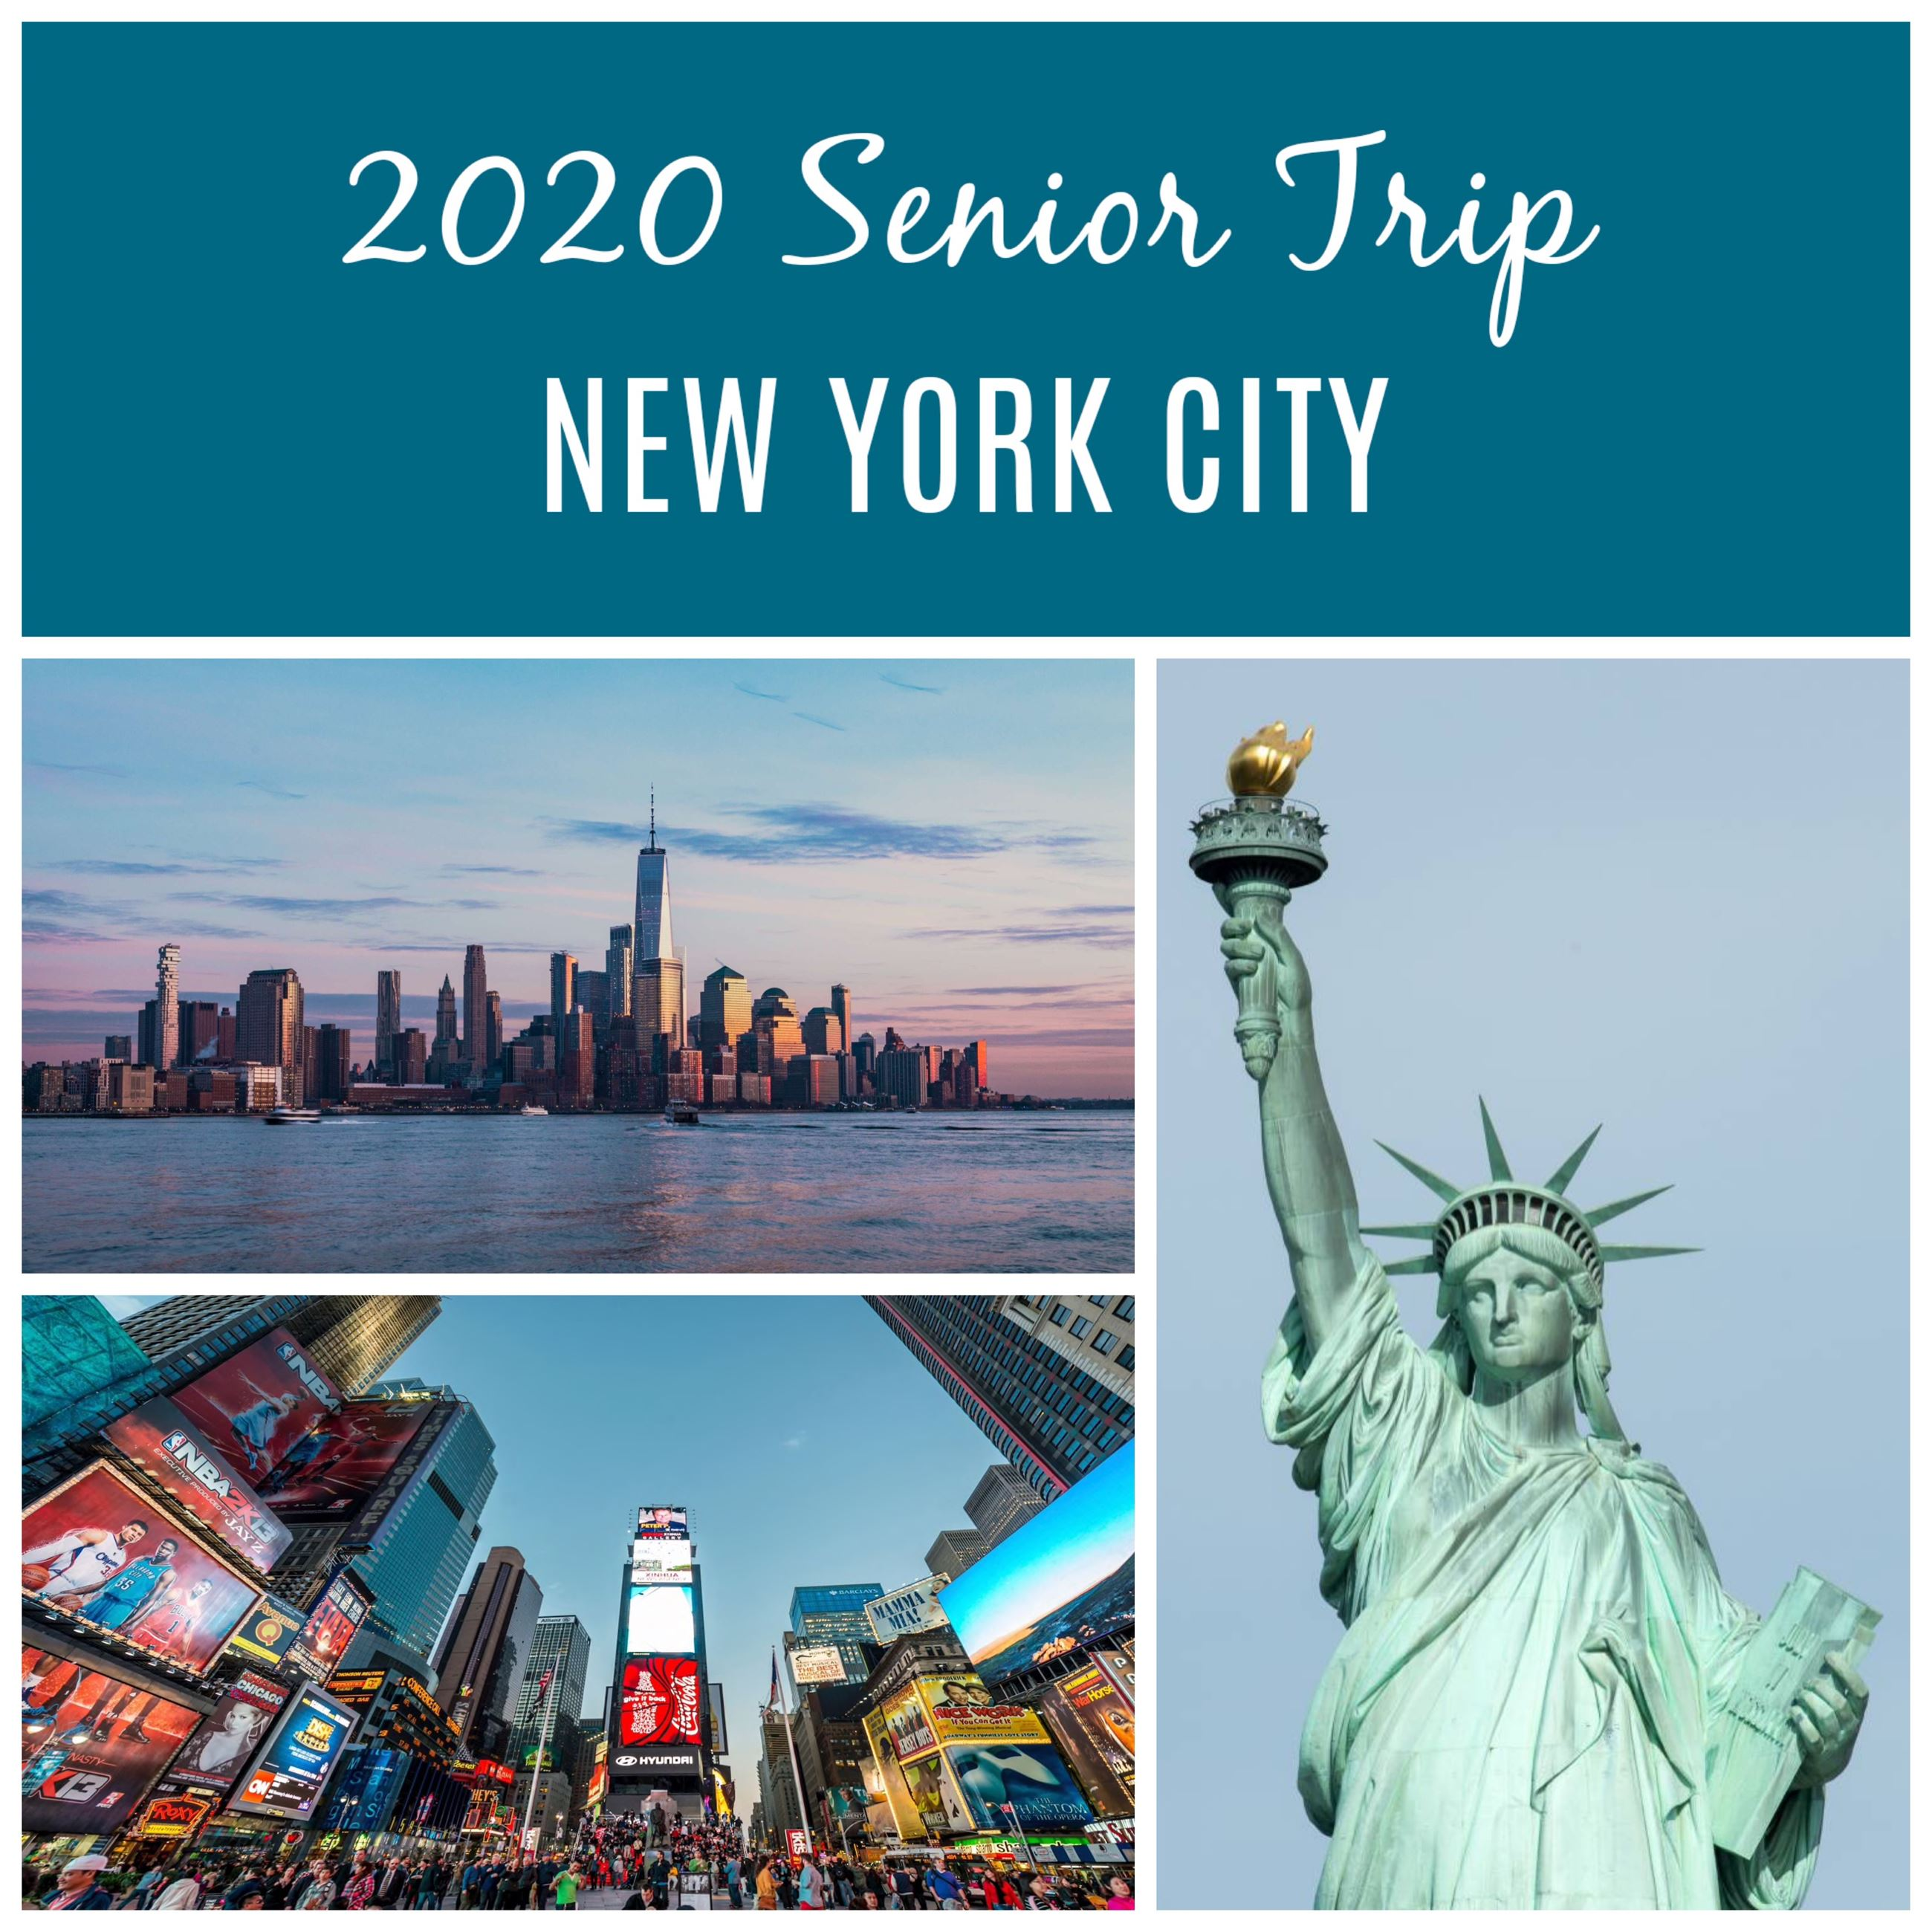 2020 Senior Trips Opens in new window